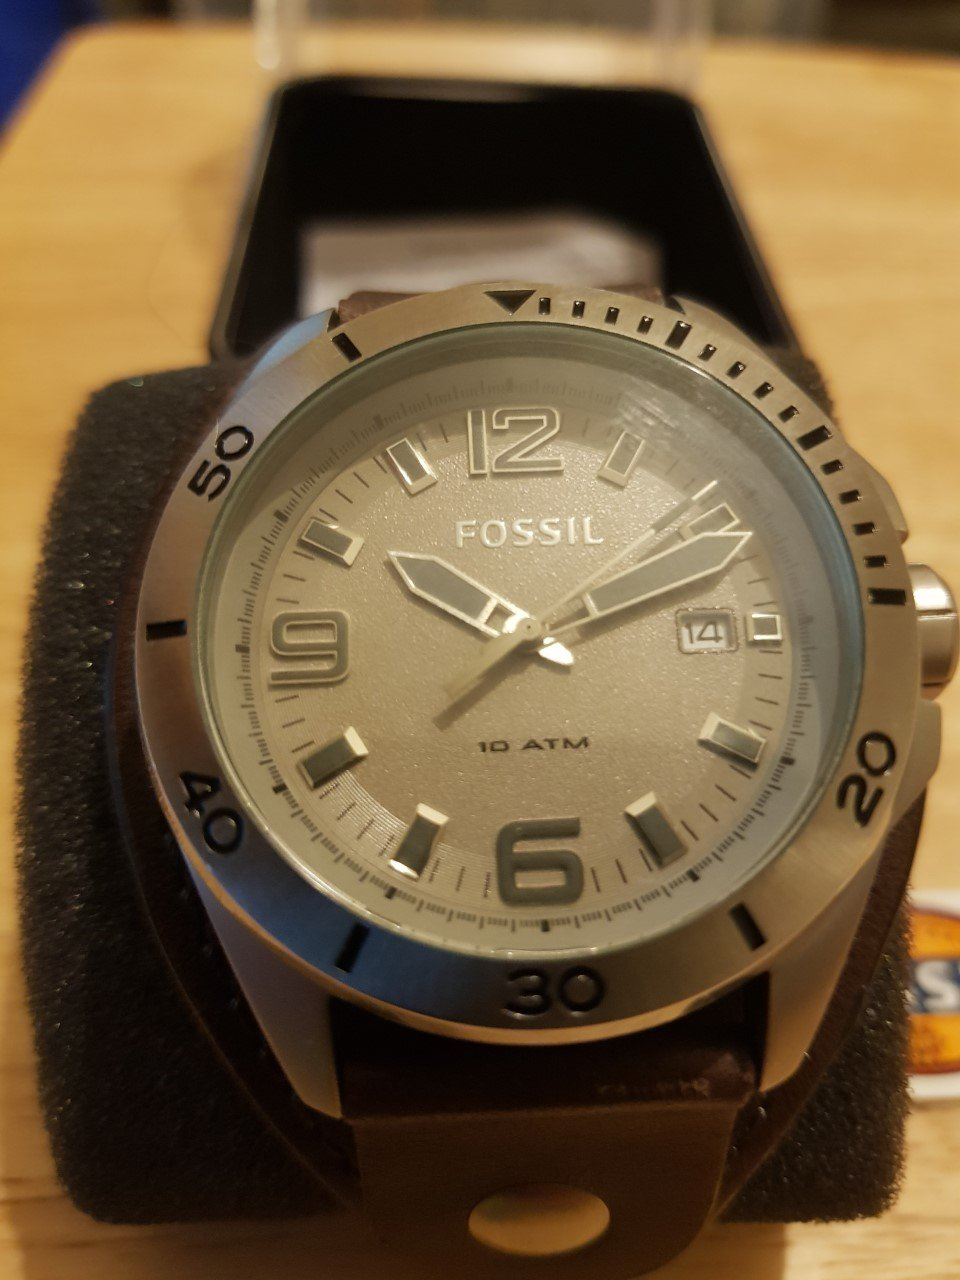 FOSSIL JR-1147 watch,never worn